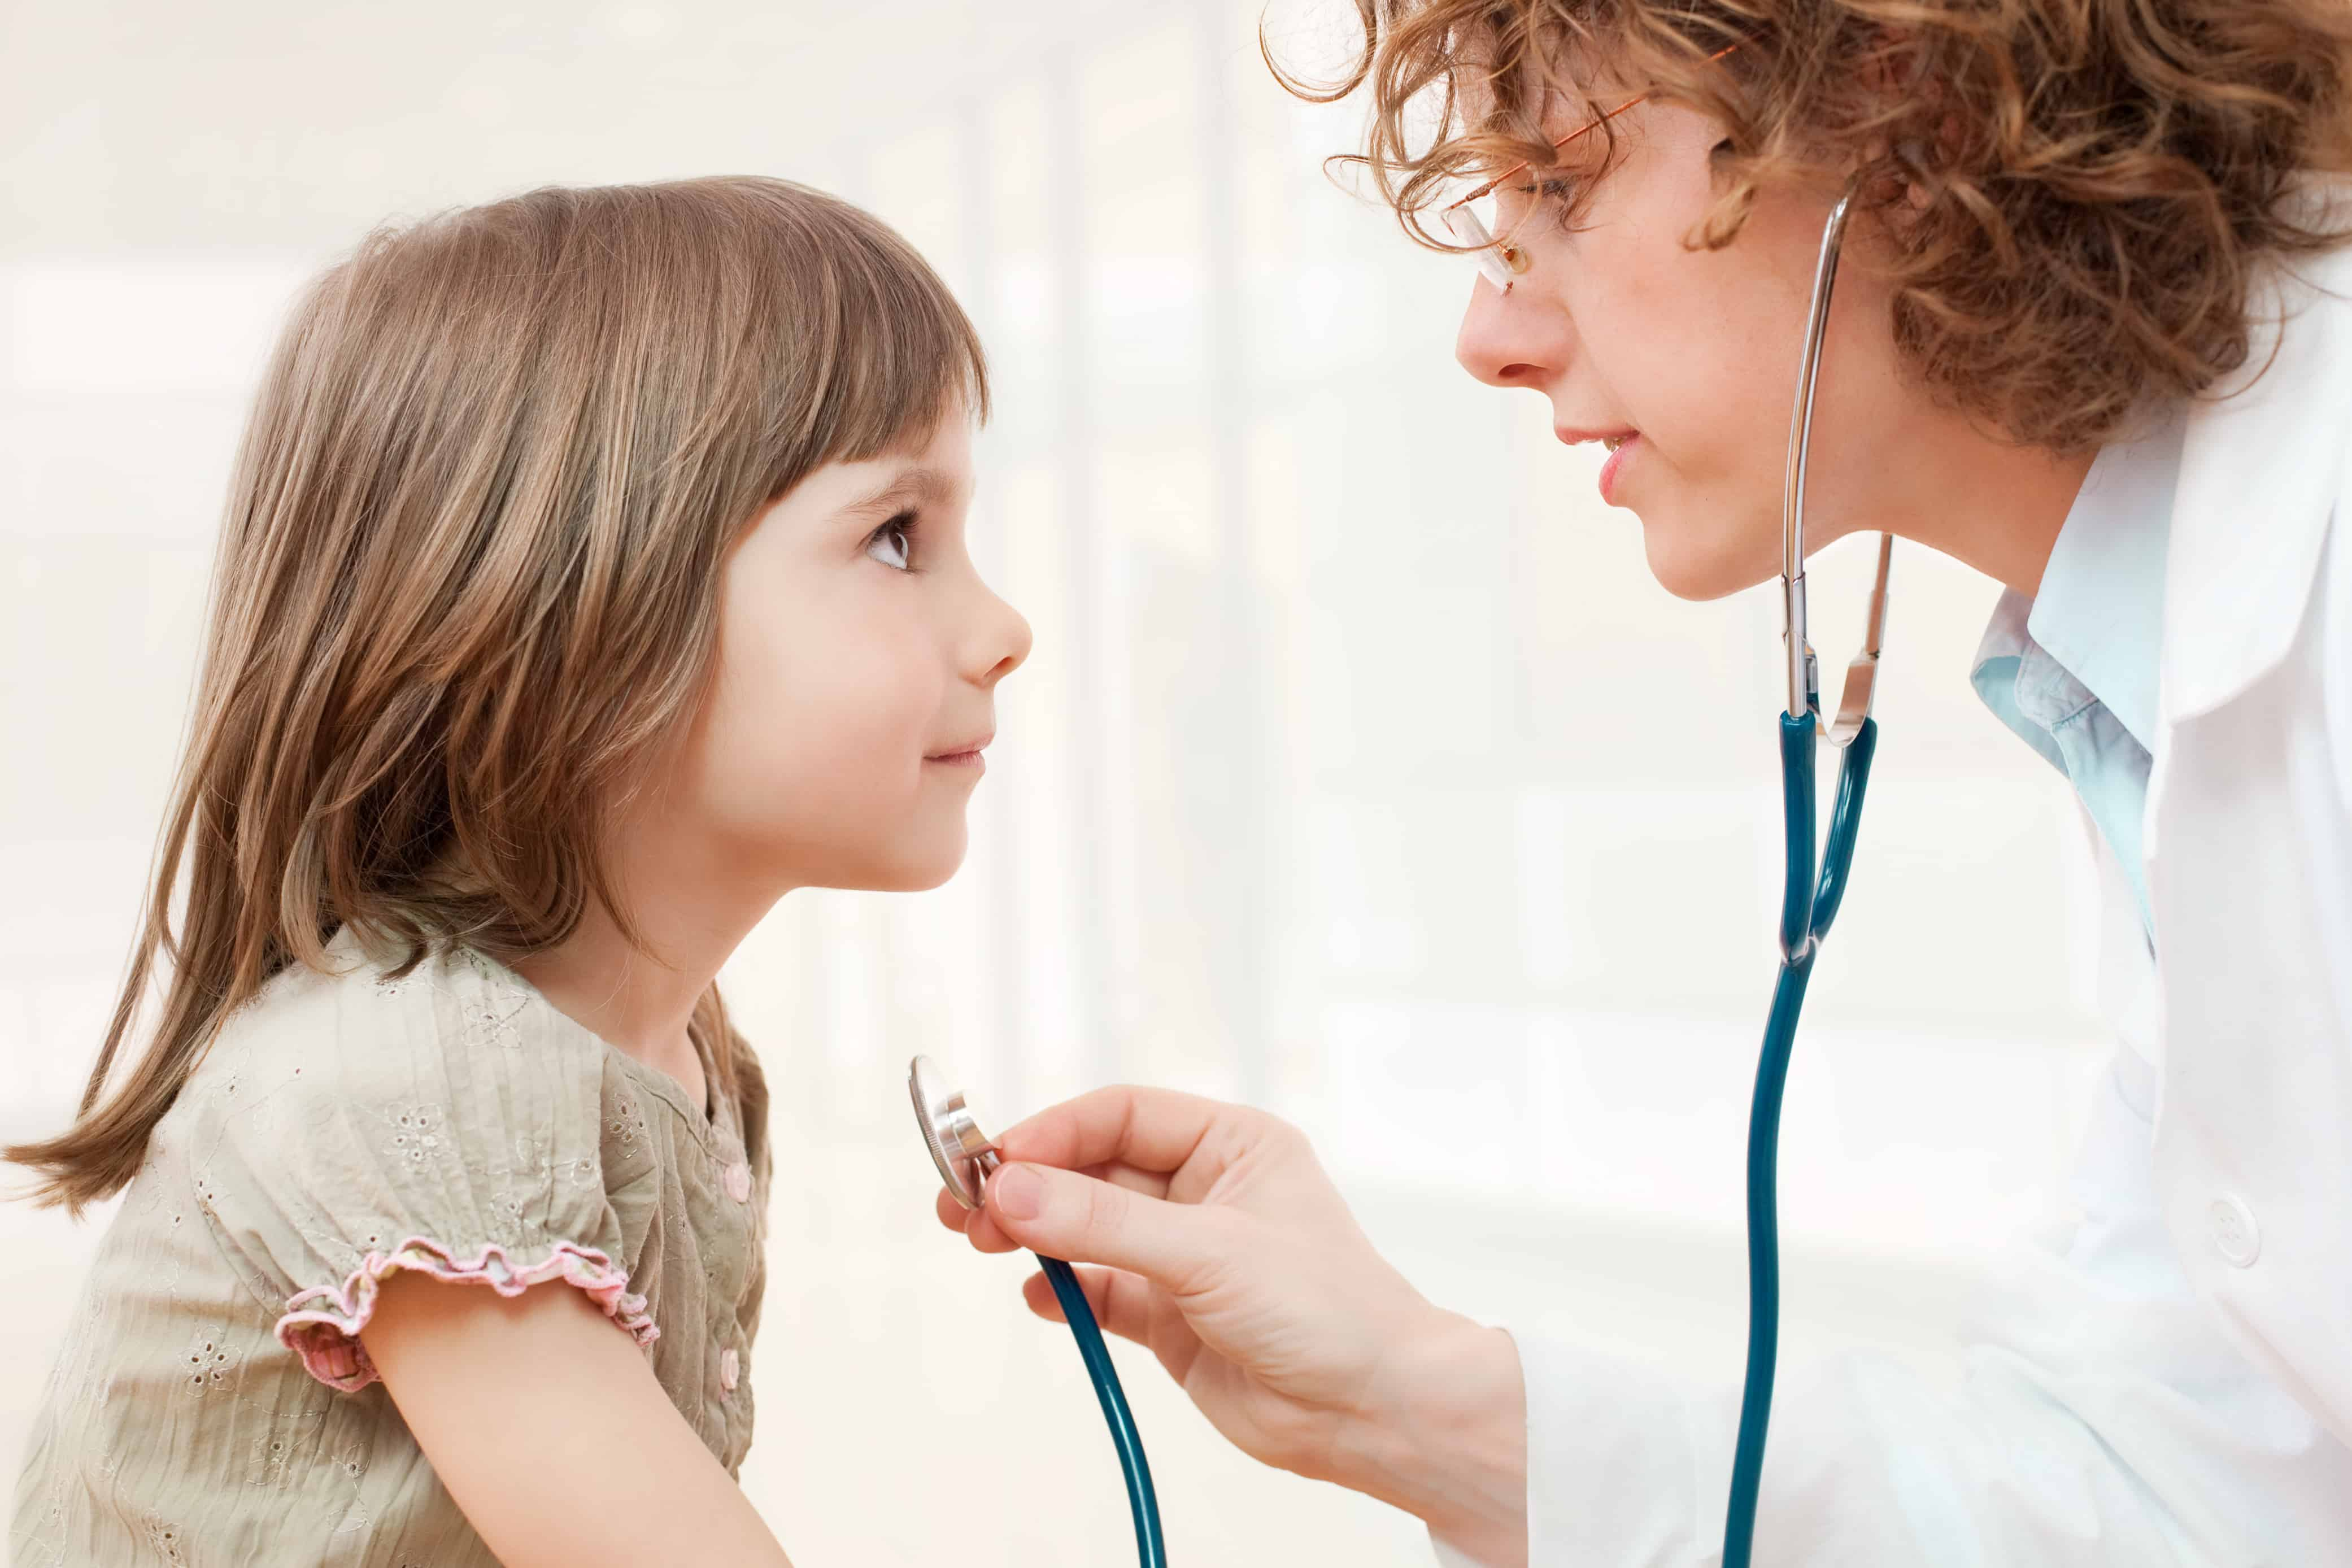 Physician with a stethescope examining a child.